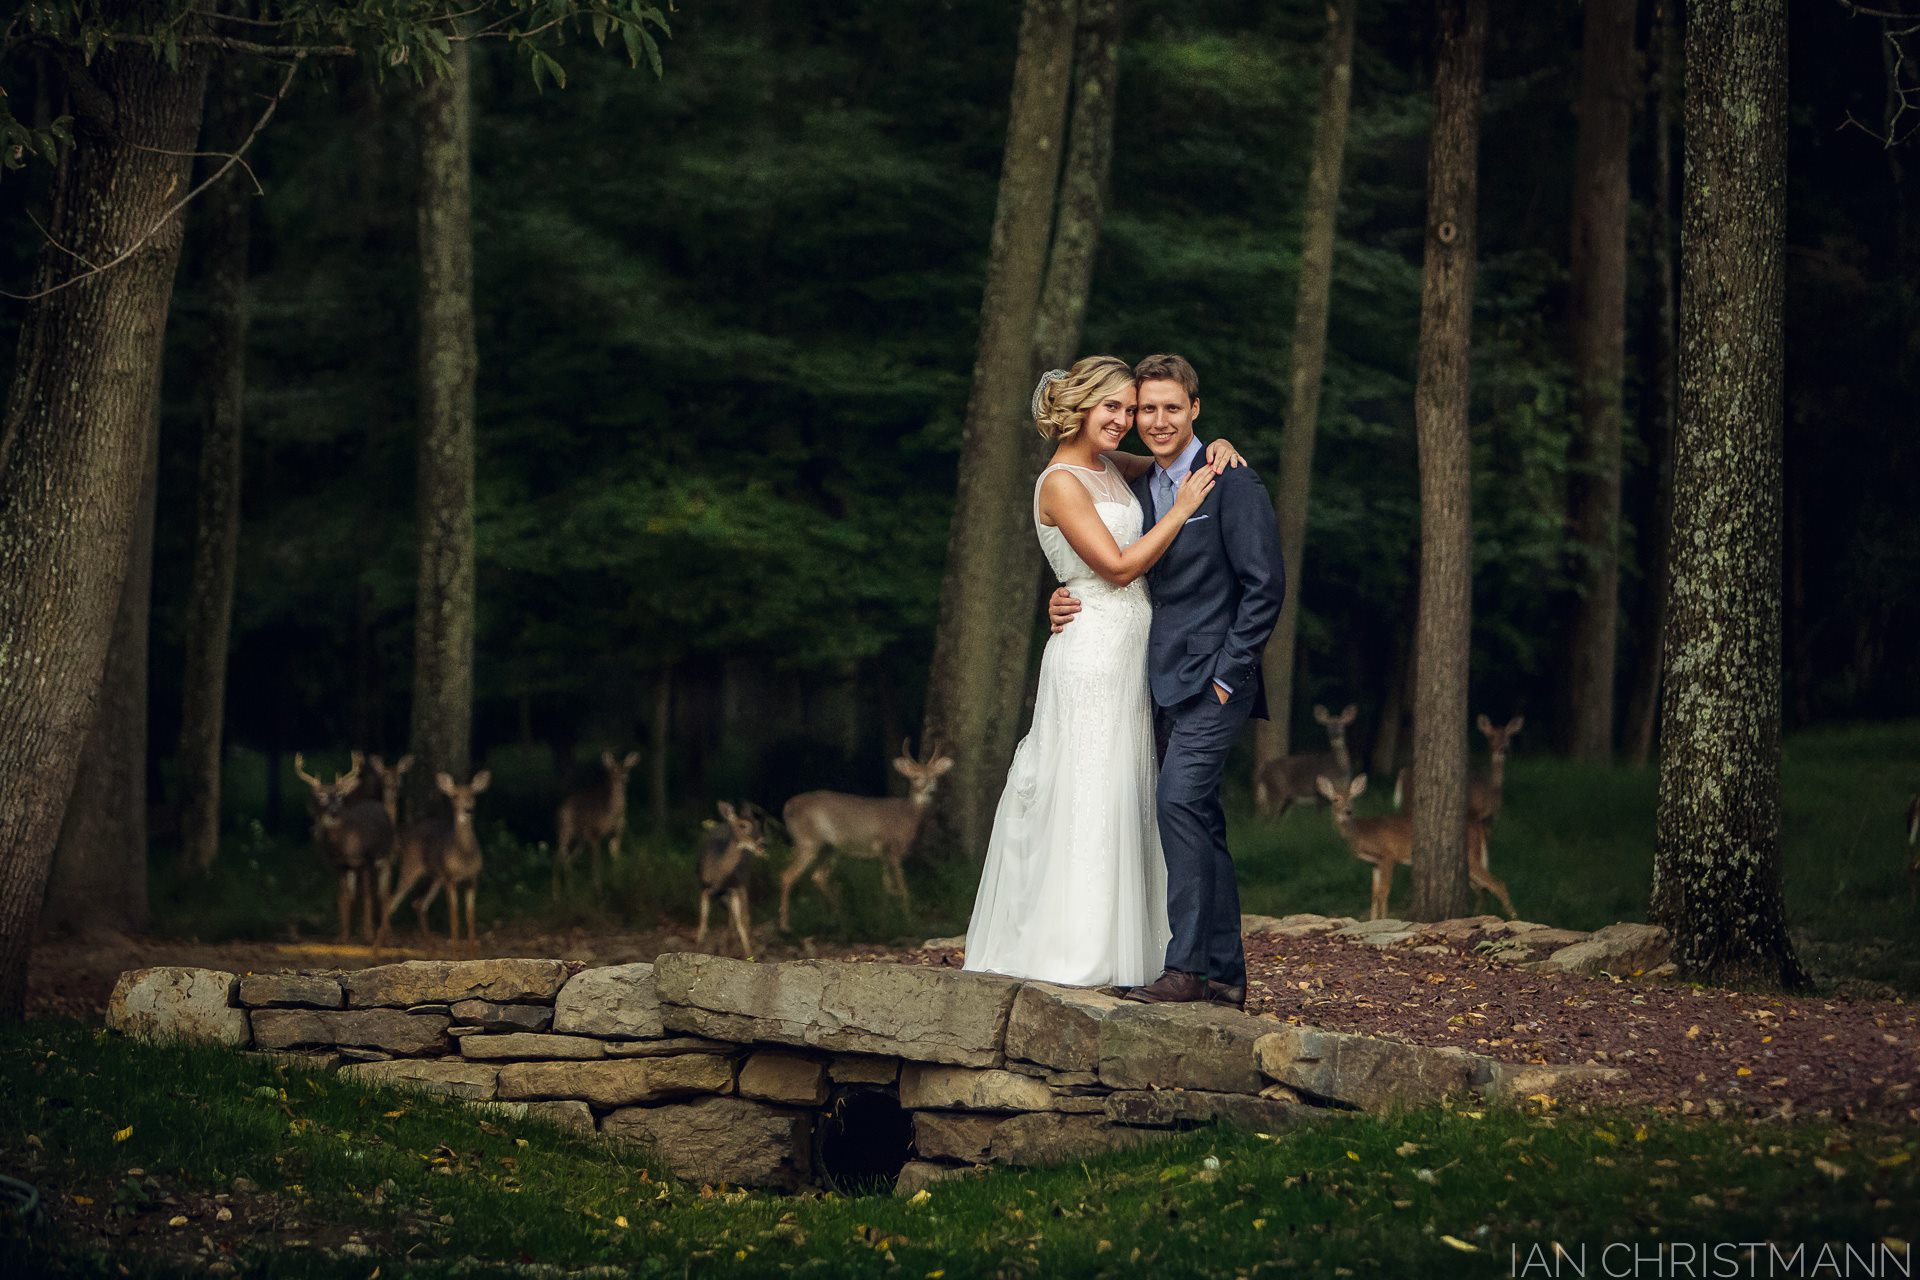 deer-wedding-crashers1